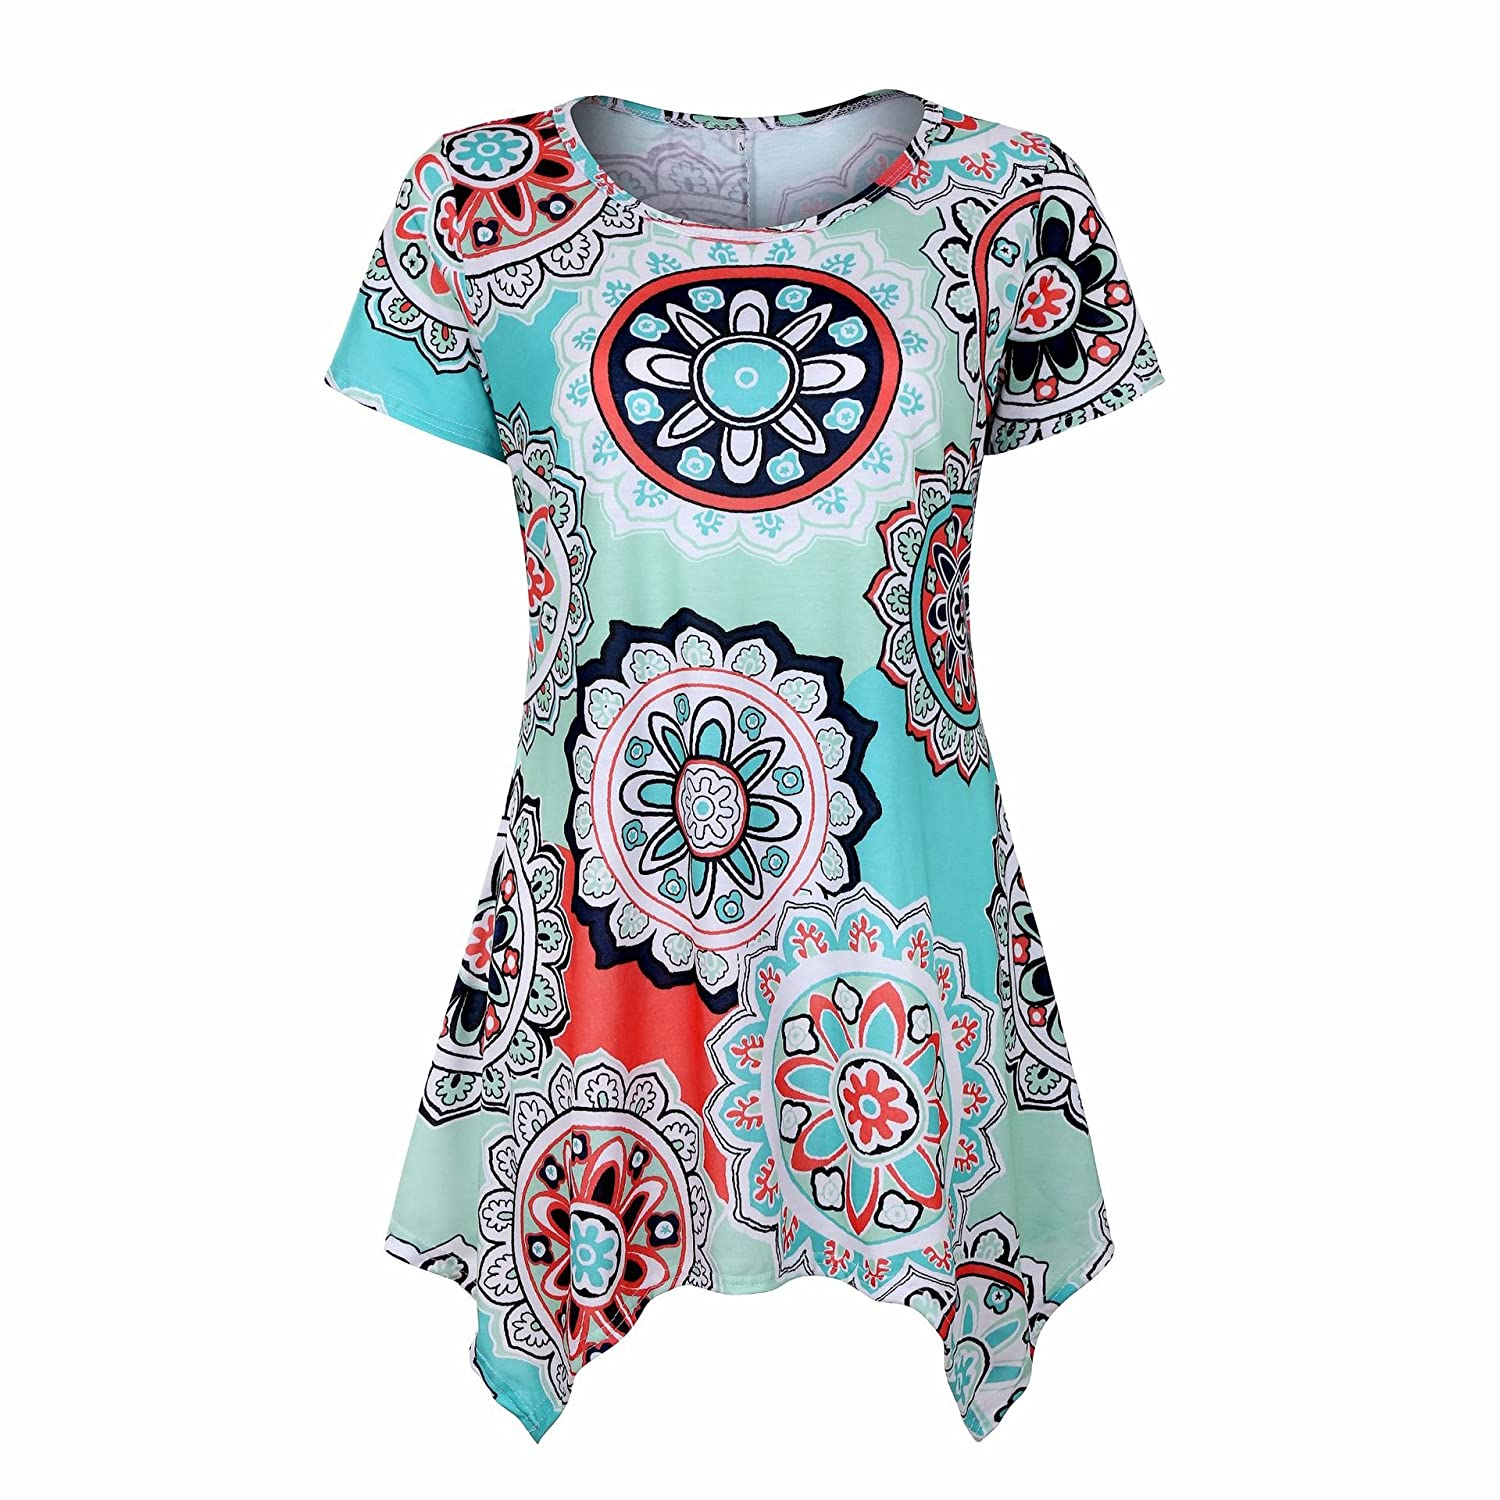 78526c10802 Top 10 wholesale Tunic Tops For Jeans - Chinabrands.com